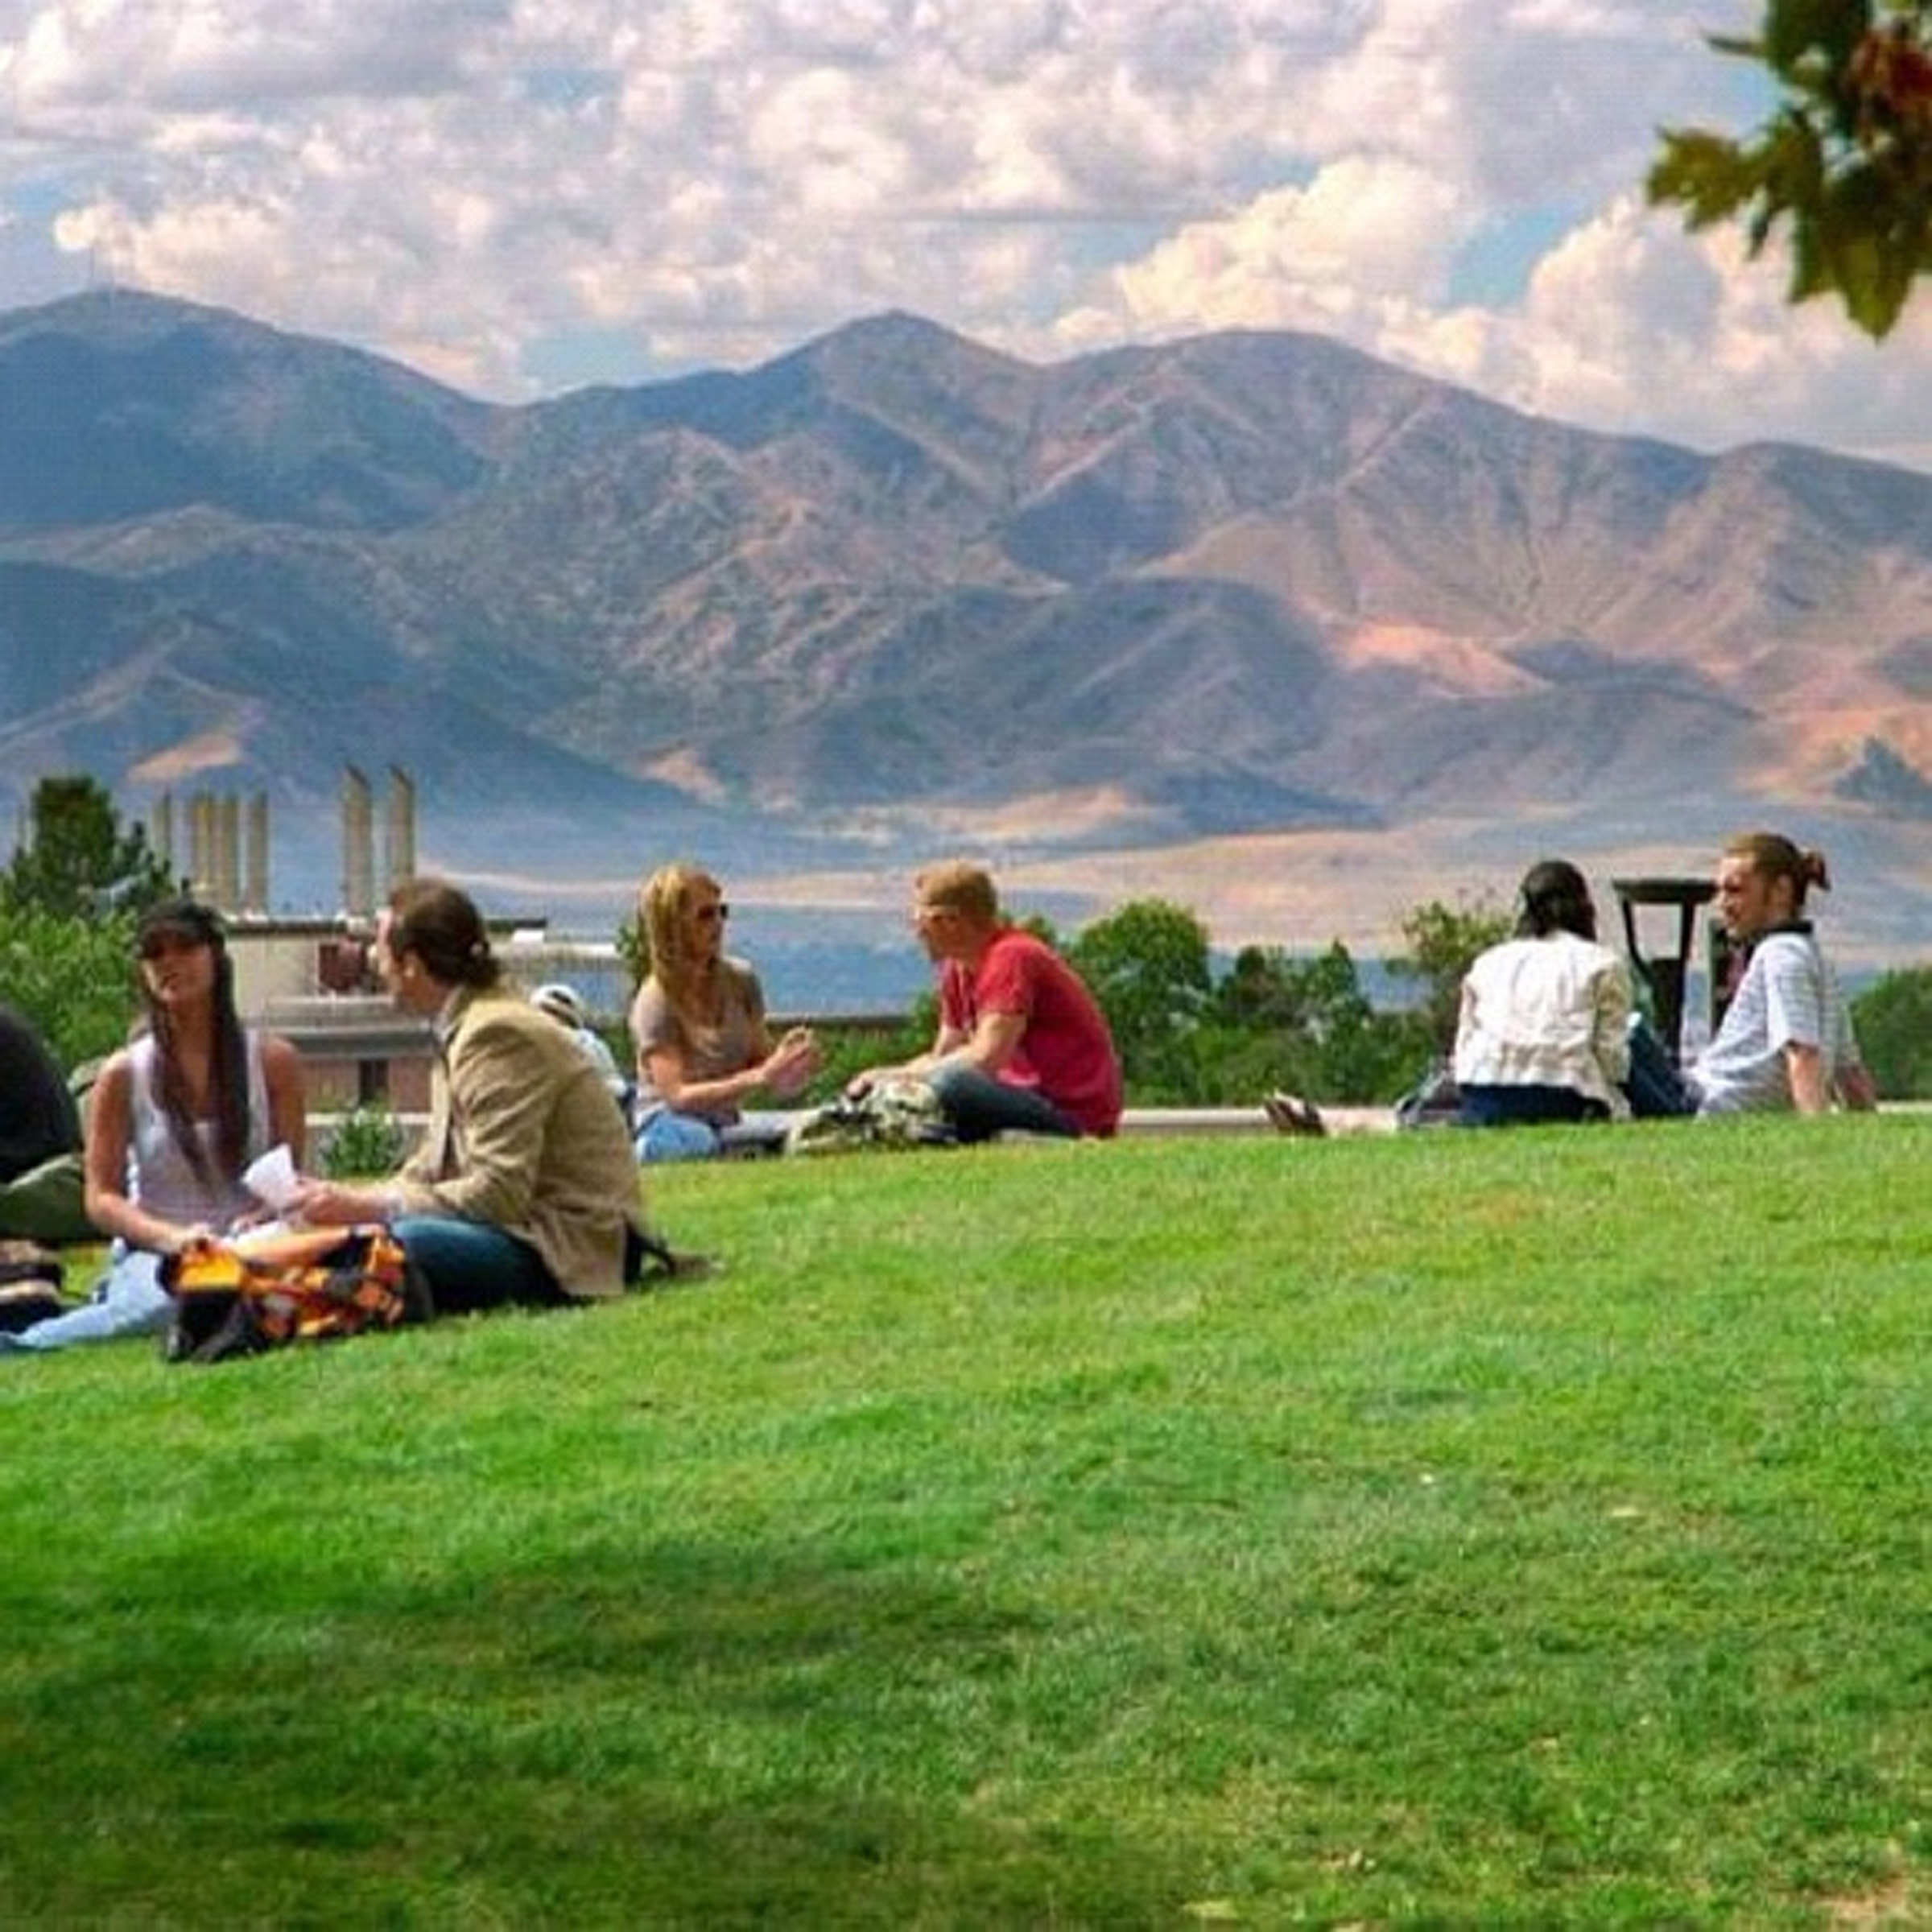 Students on the University of Utah campus.